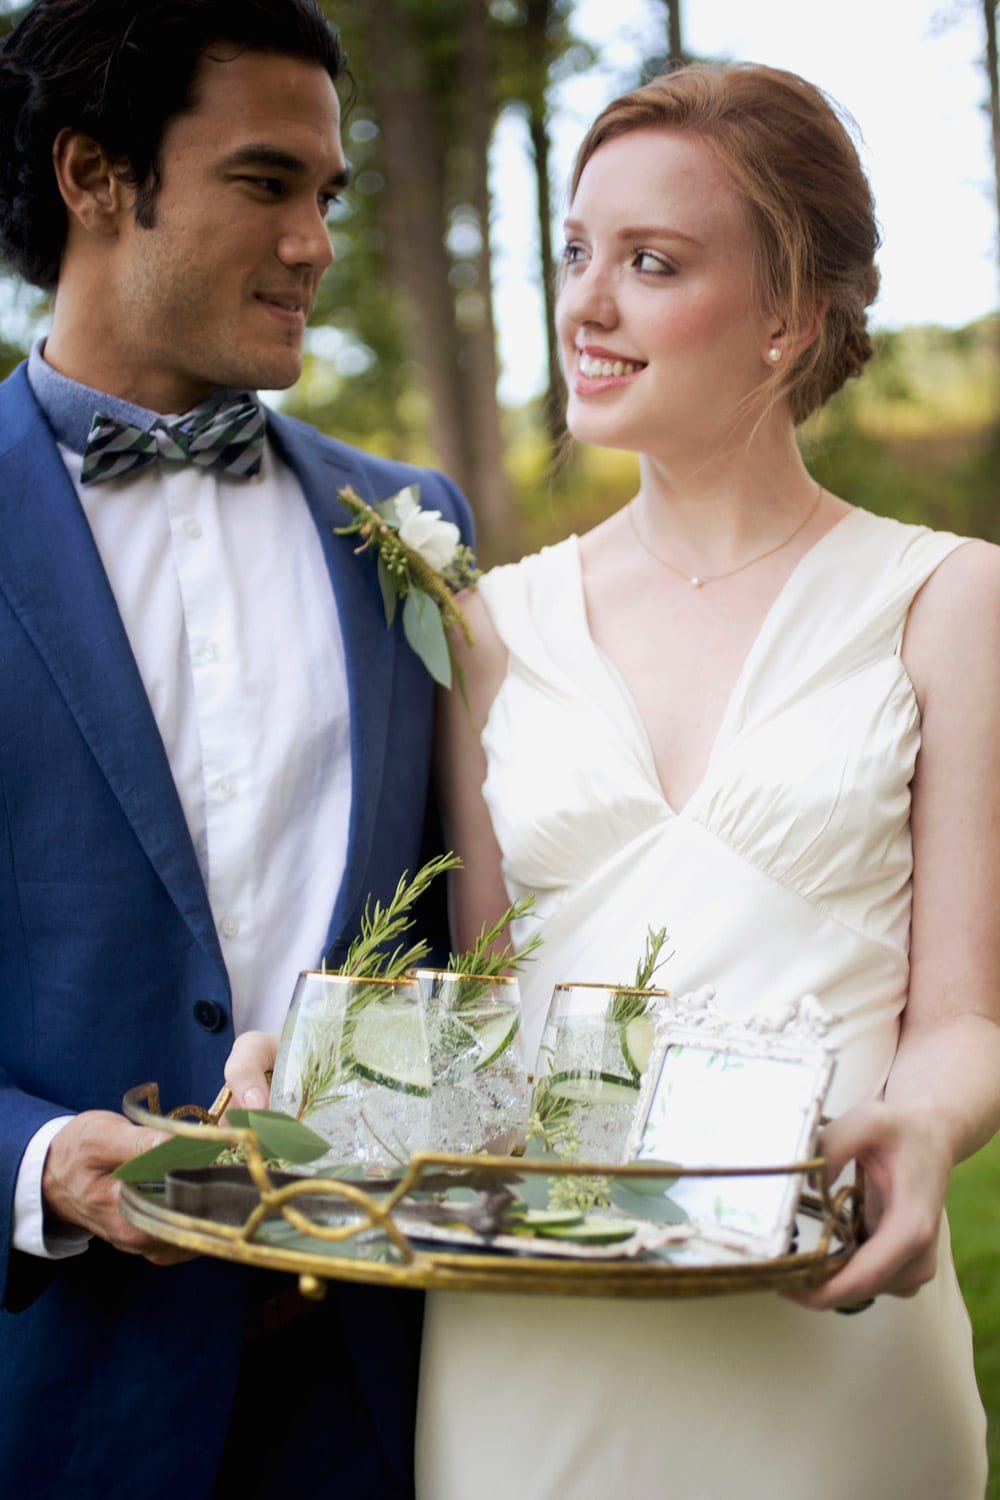 Bride and groom hold glass tray with drinks